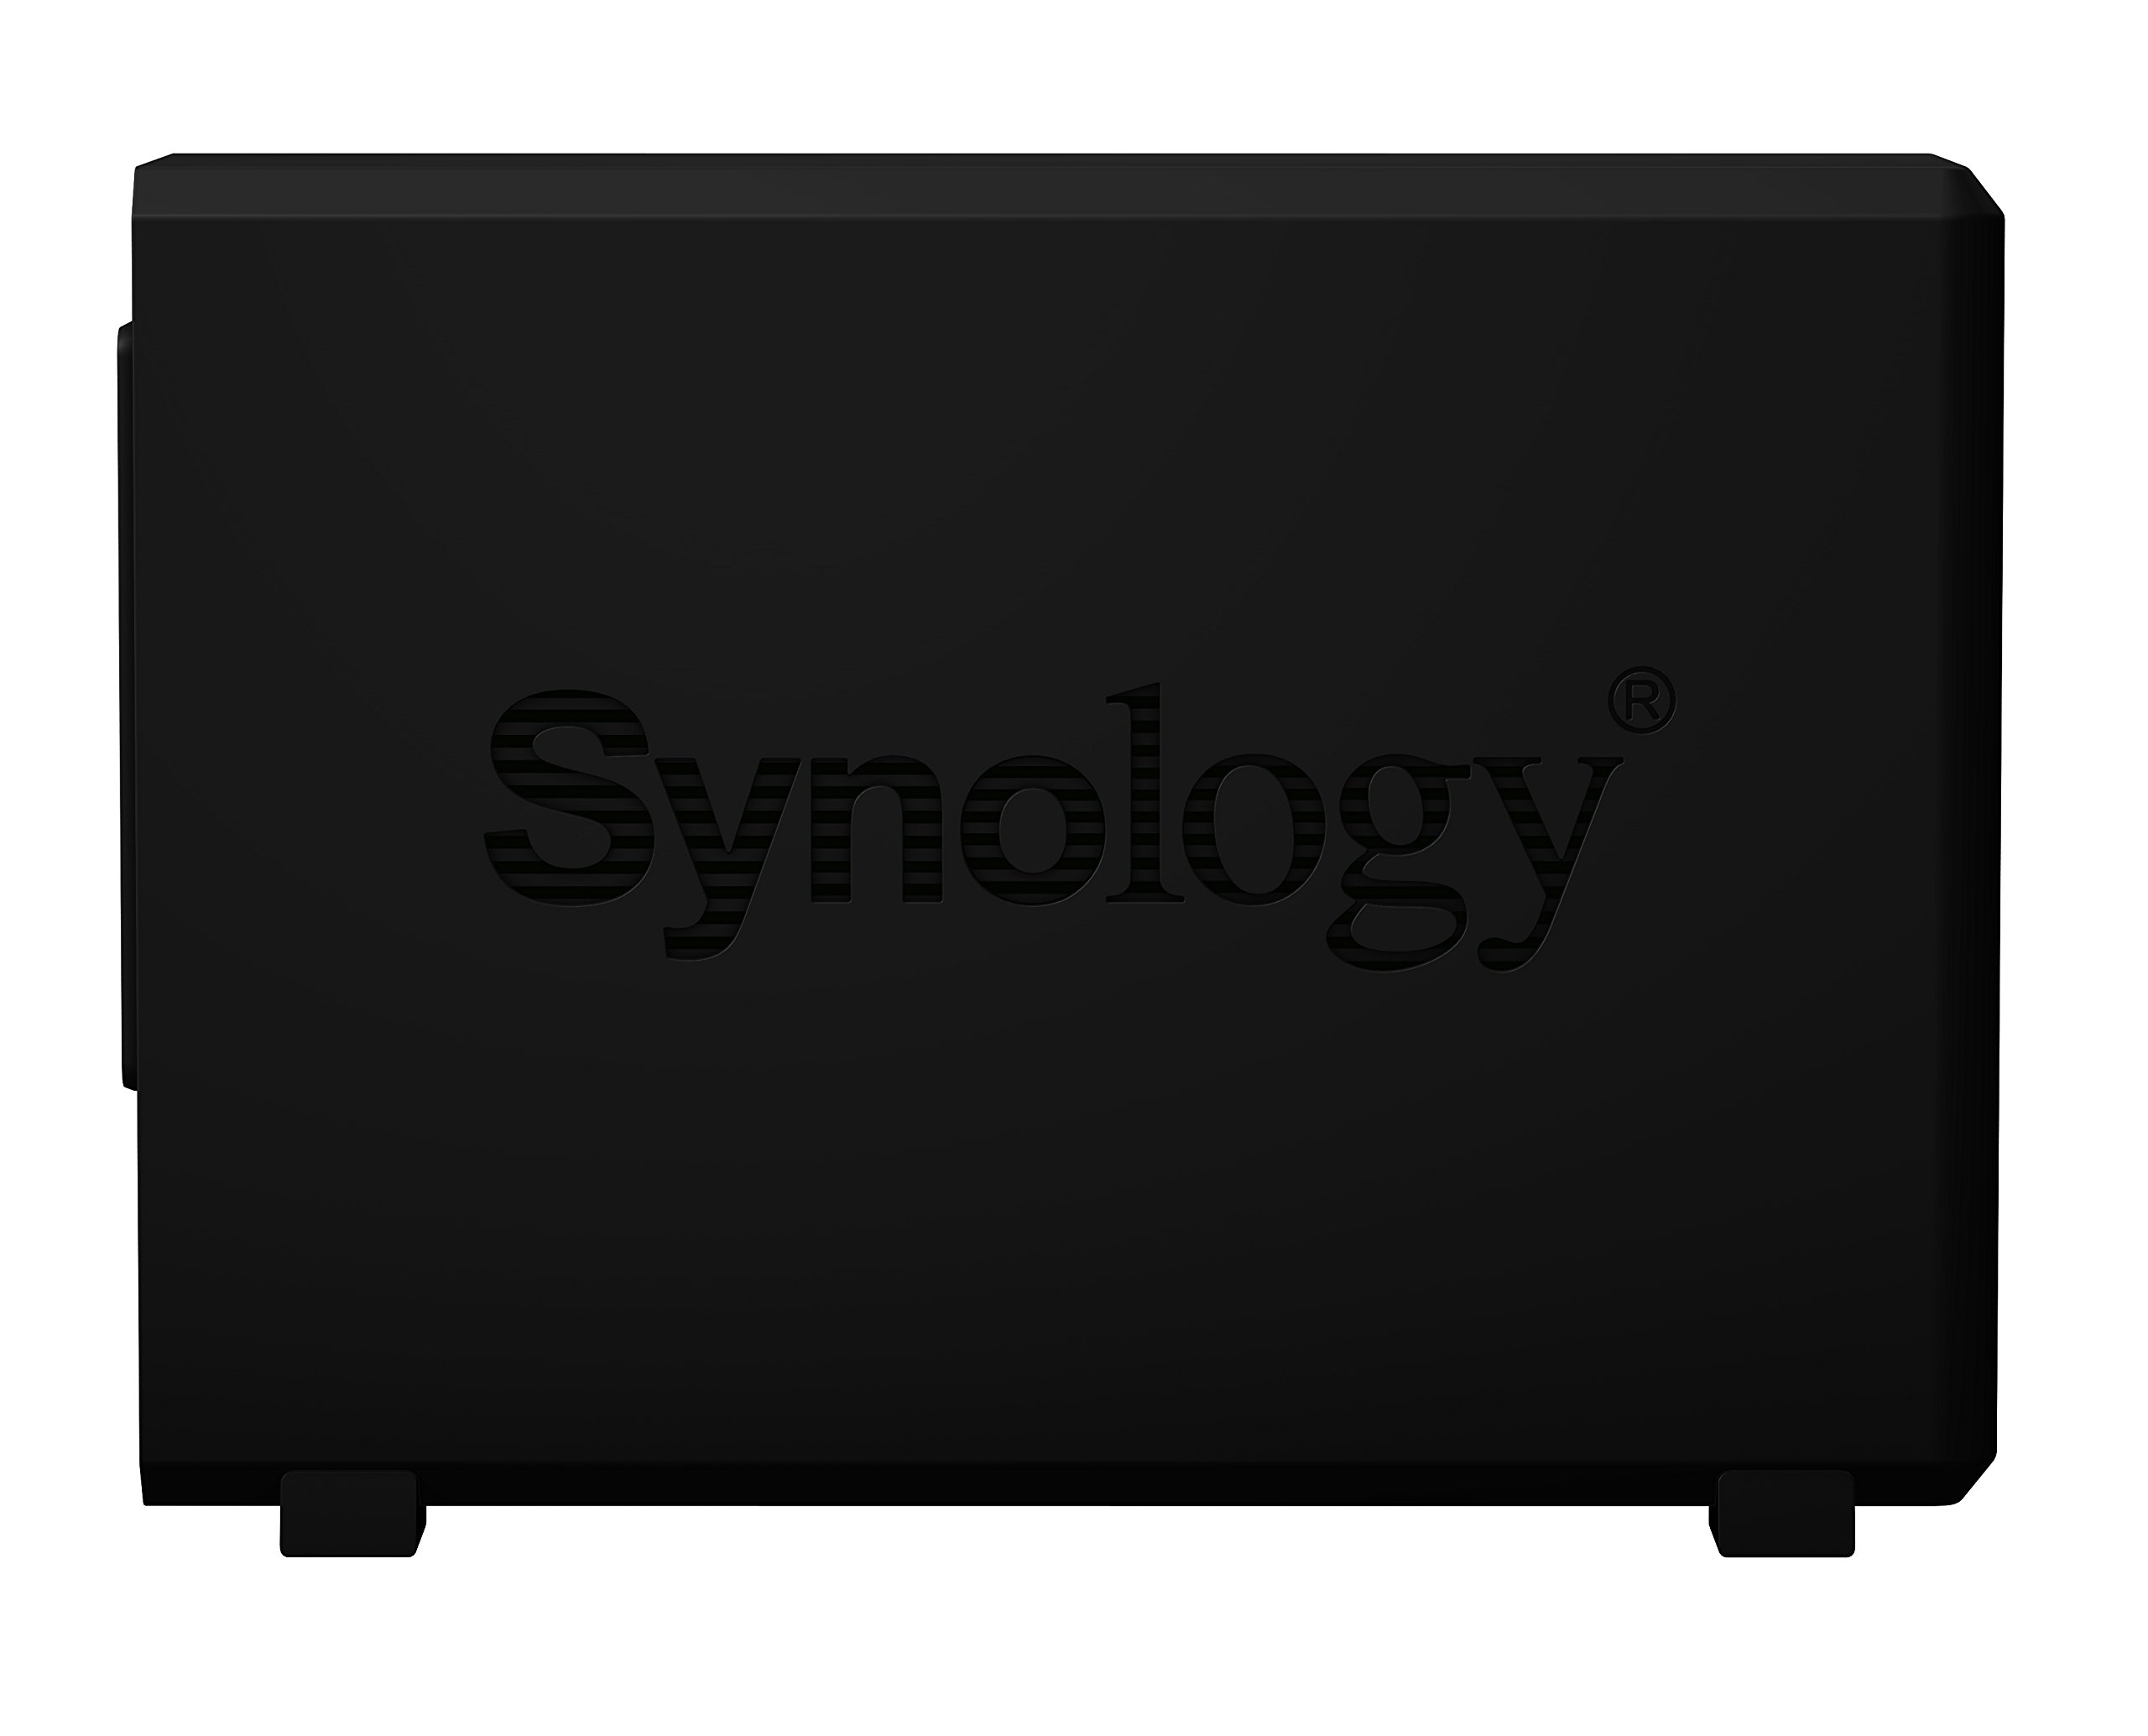 Synology 2 bay NAS Disk Station, DS218play (Diskless) 2 2-bay NAS with optimal multimedia solution for home users 4K video transcoding on the fly with 10 bit H.265 codec support. Operating Temperature : 5°C to 40°C (40°F to 104°F), Storage Temperature : -20°C to 60°C (-5°F to 140°F) Up to 112 MB/s and 112 MB/s sequential reading and writing throughput, respectively